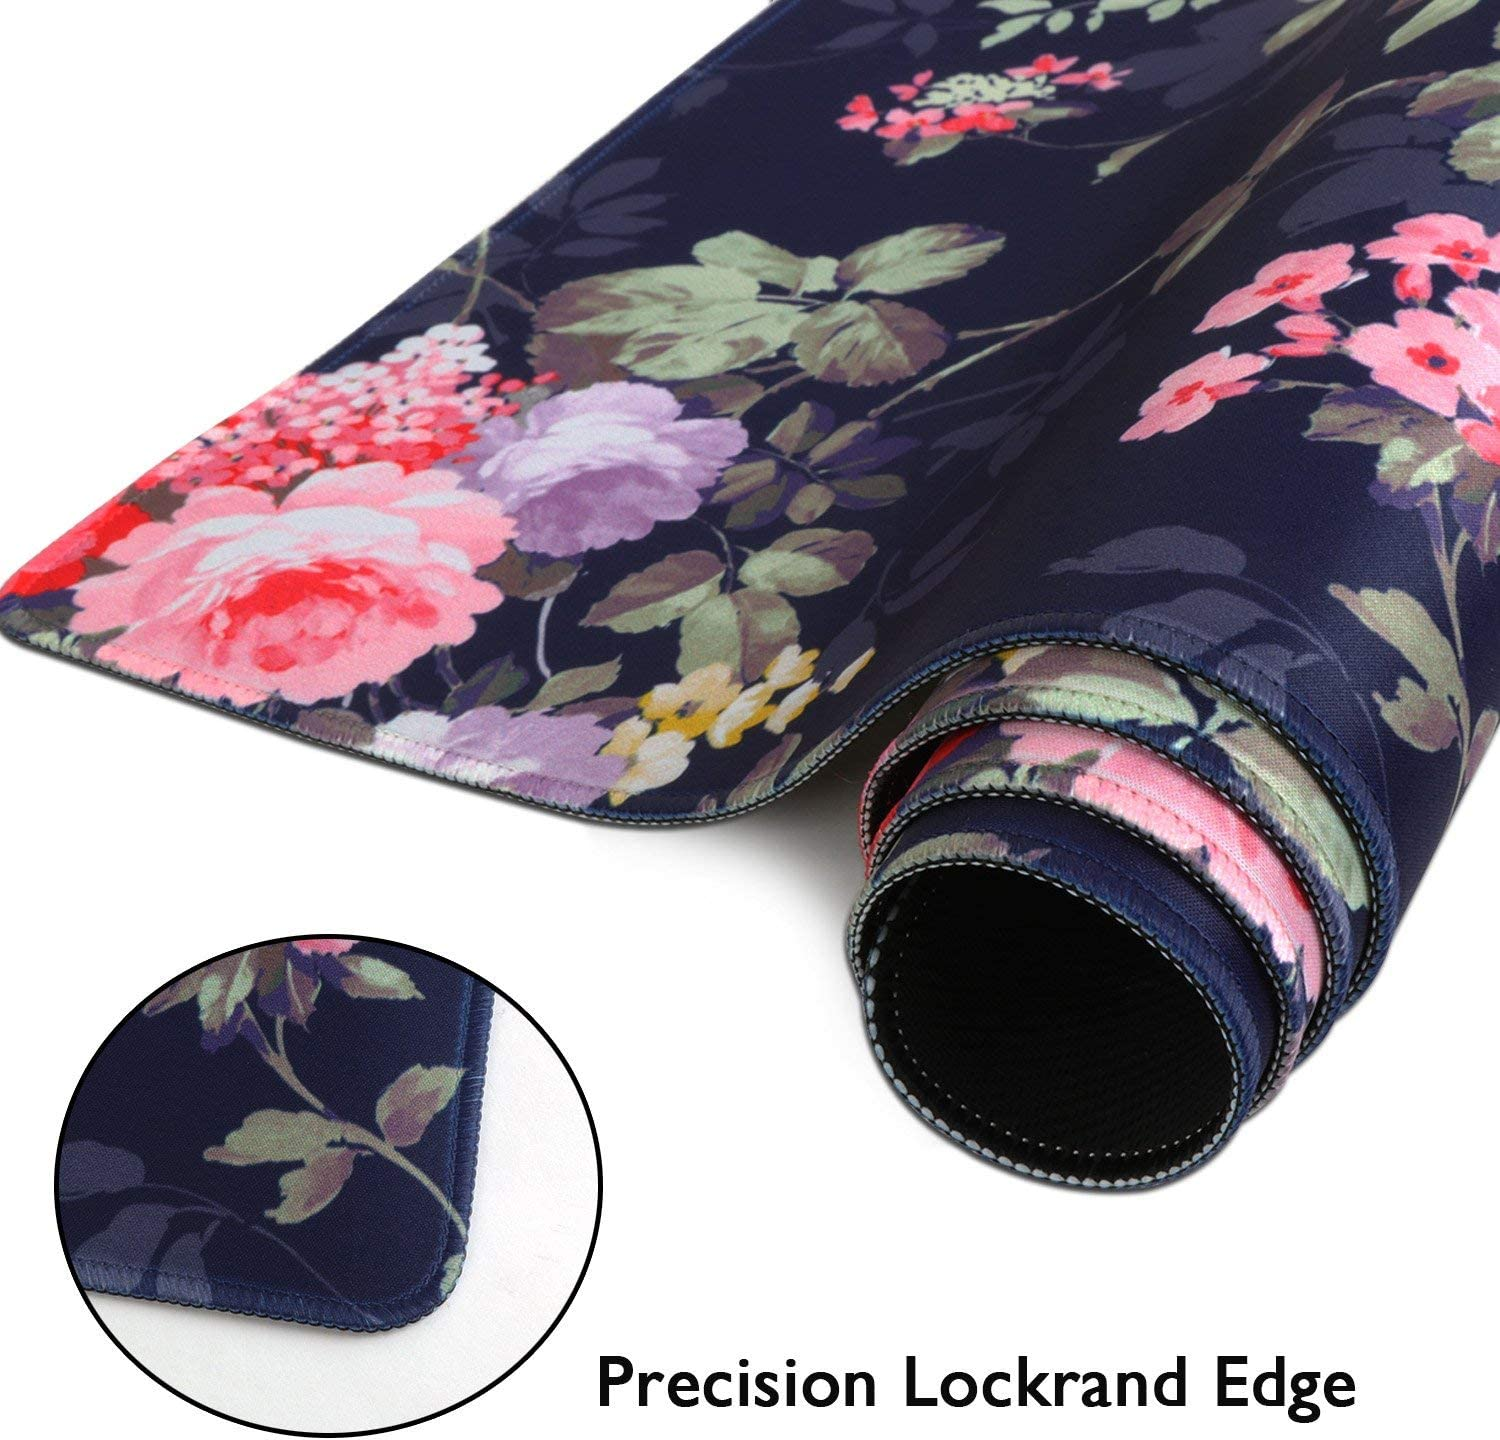 Non-Slip Water-Resistant Rubber Base Computer Keyboard Mouse Mat Peony Flower iLeadon Extended Gaming Mouse Pad Ideal Partner for Work /& Game 35.1 x 15.75-inch 2.5mm Thick XX-Large